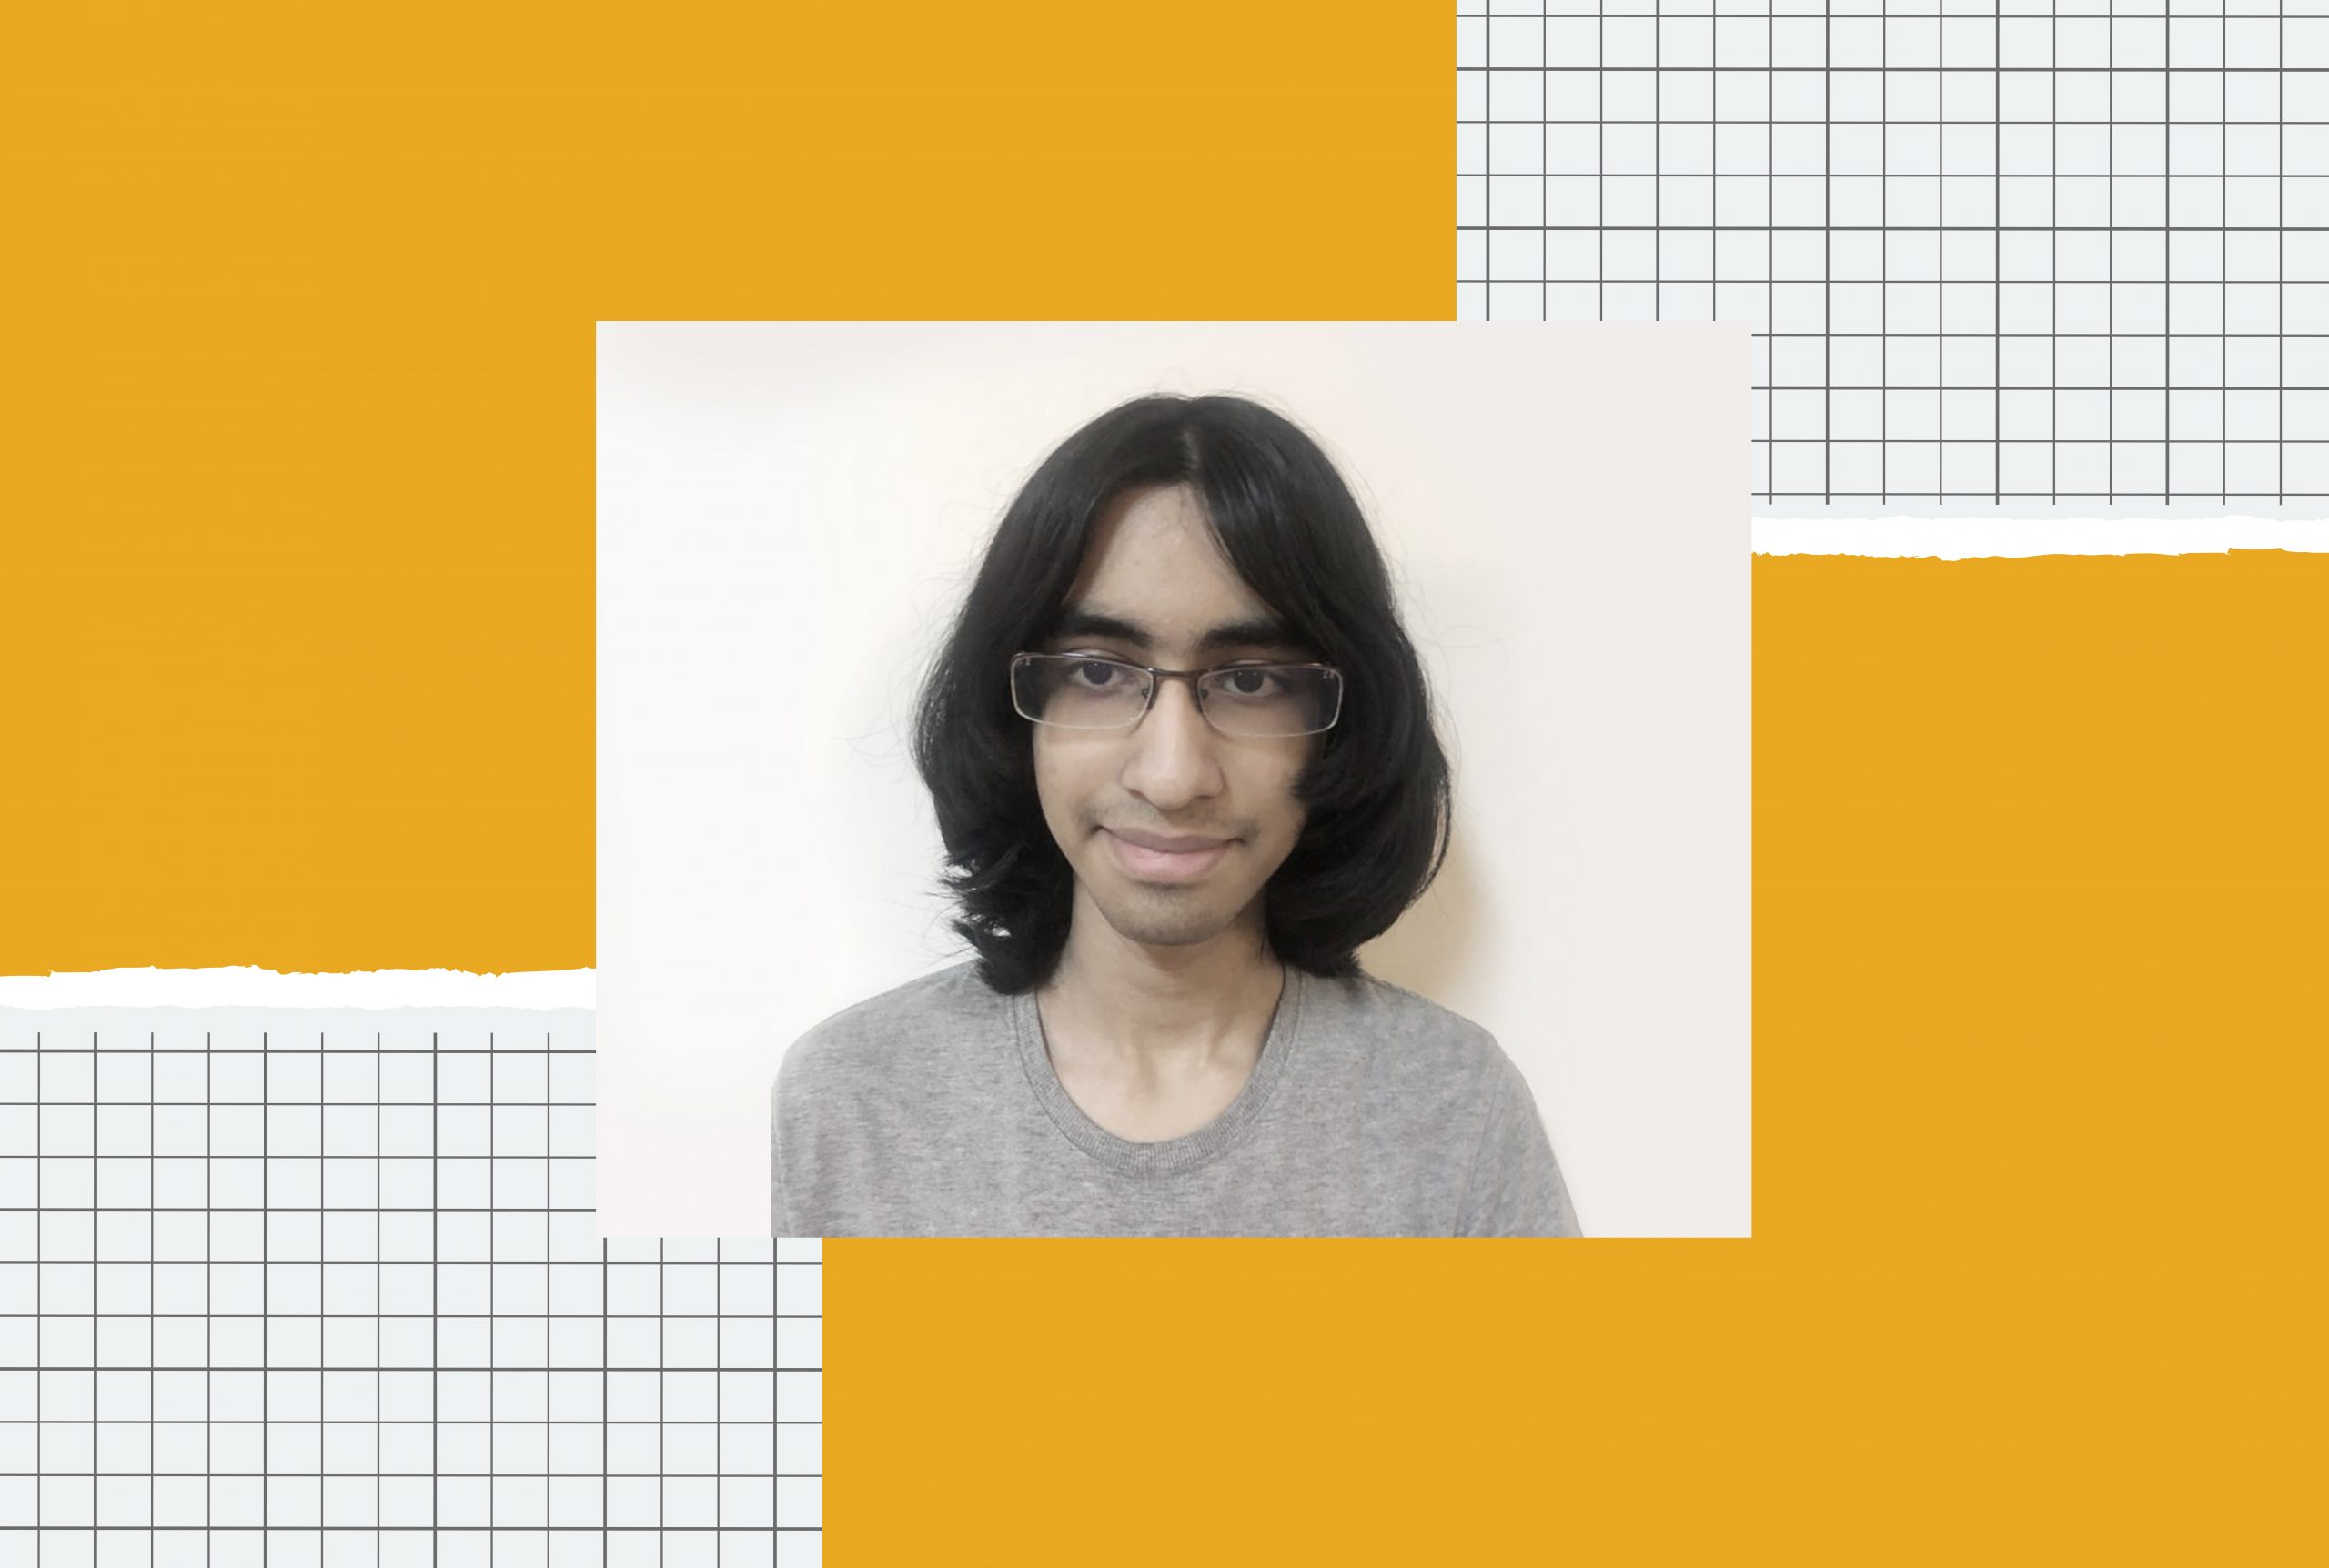 An iilustration with the image of a long-haired Indian boy wearing glasses in the middle.